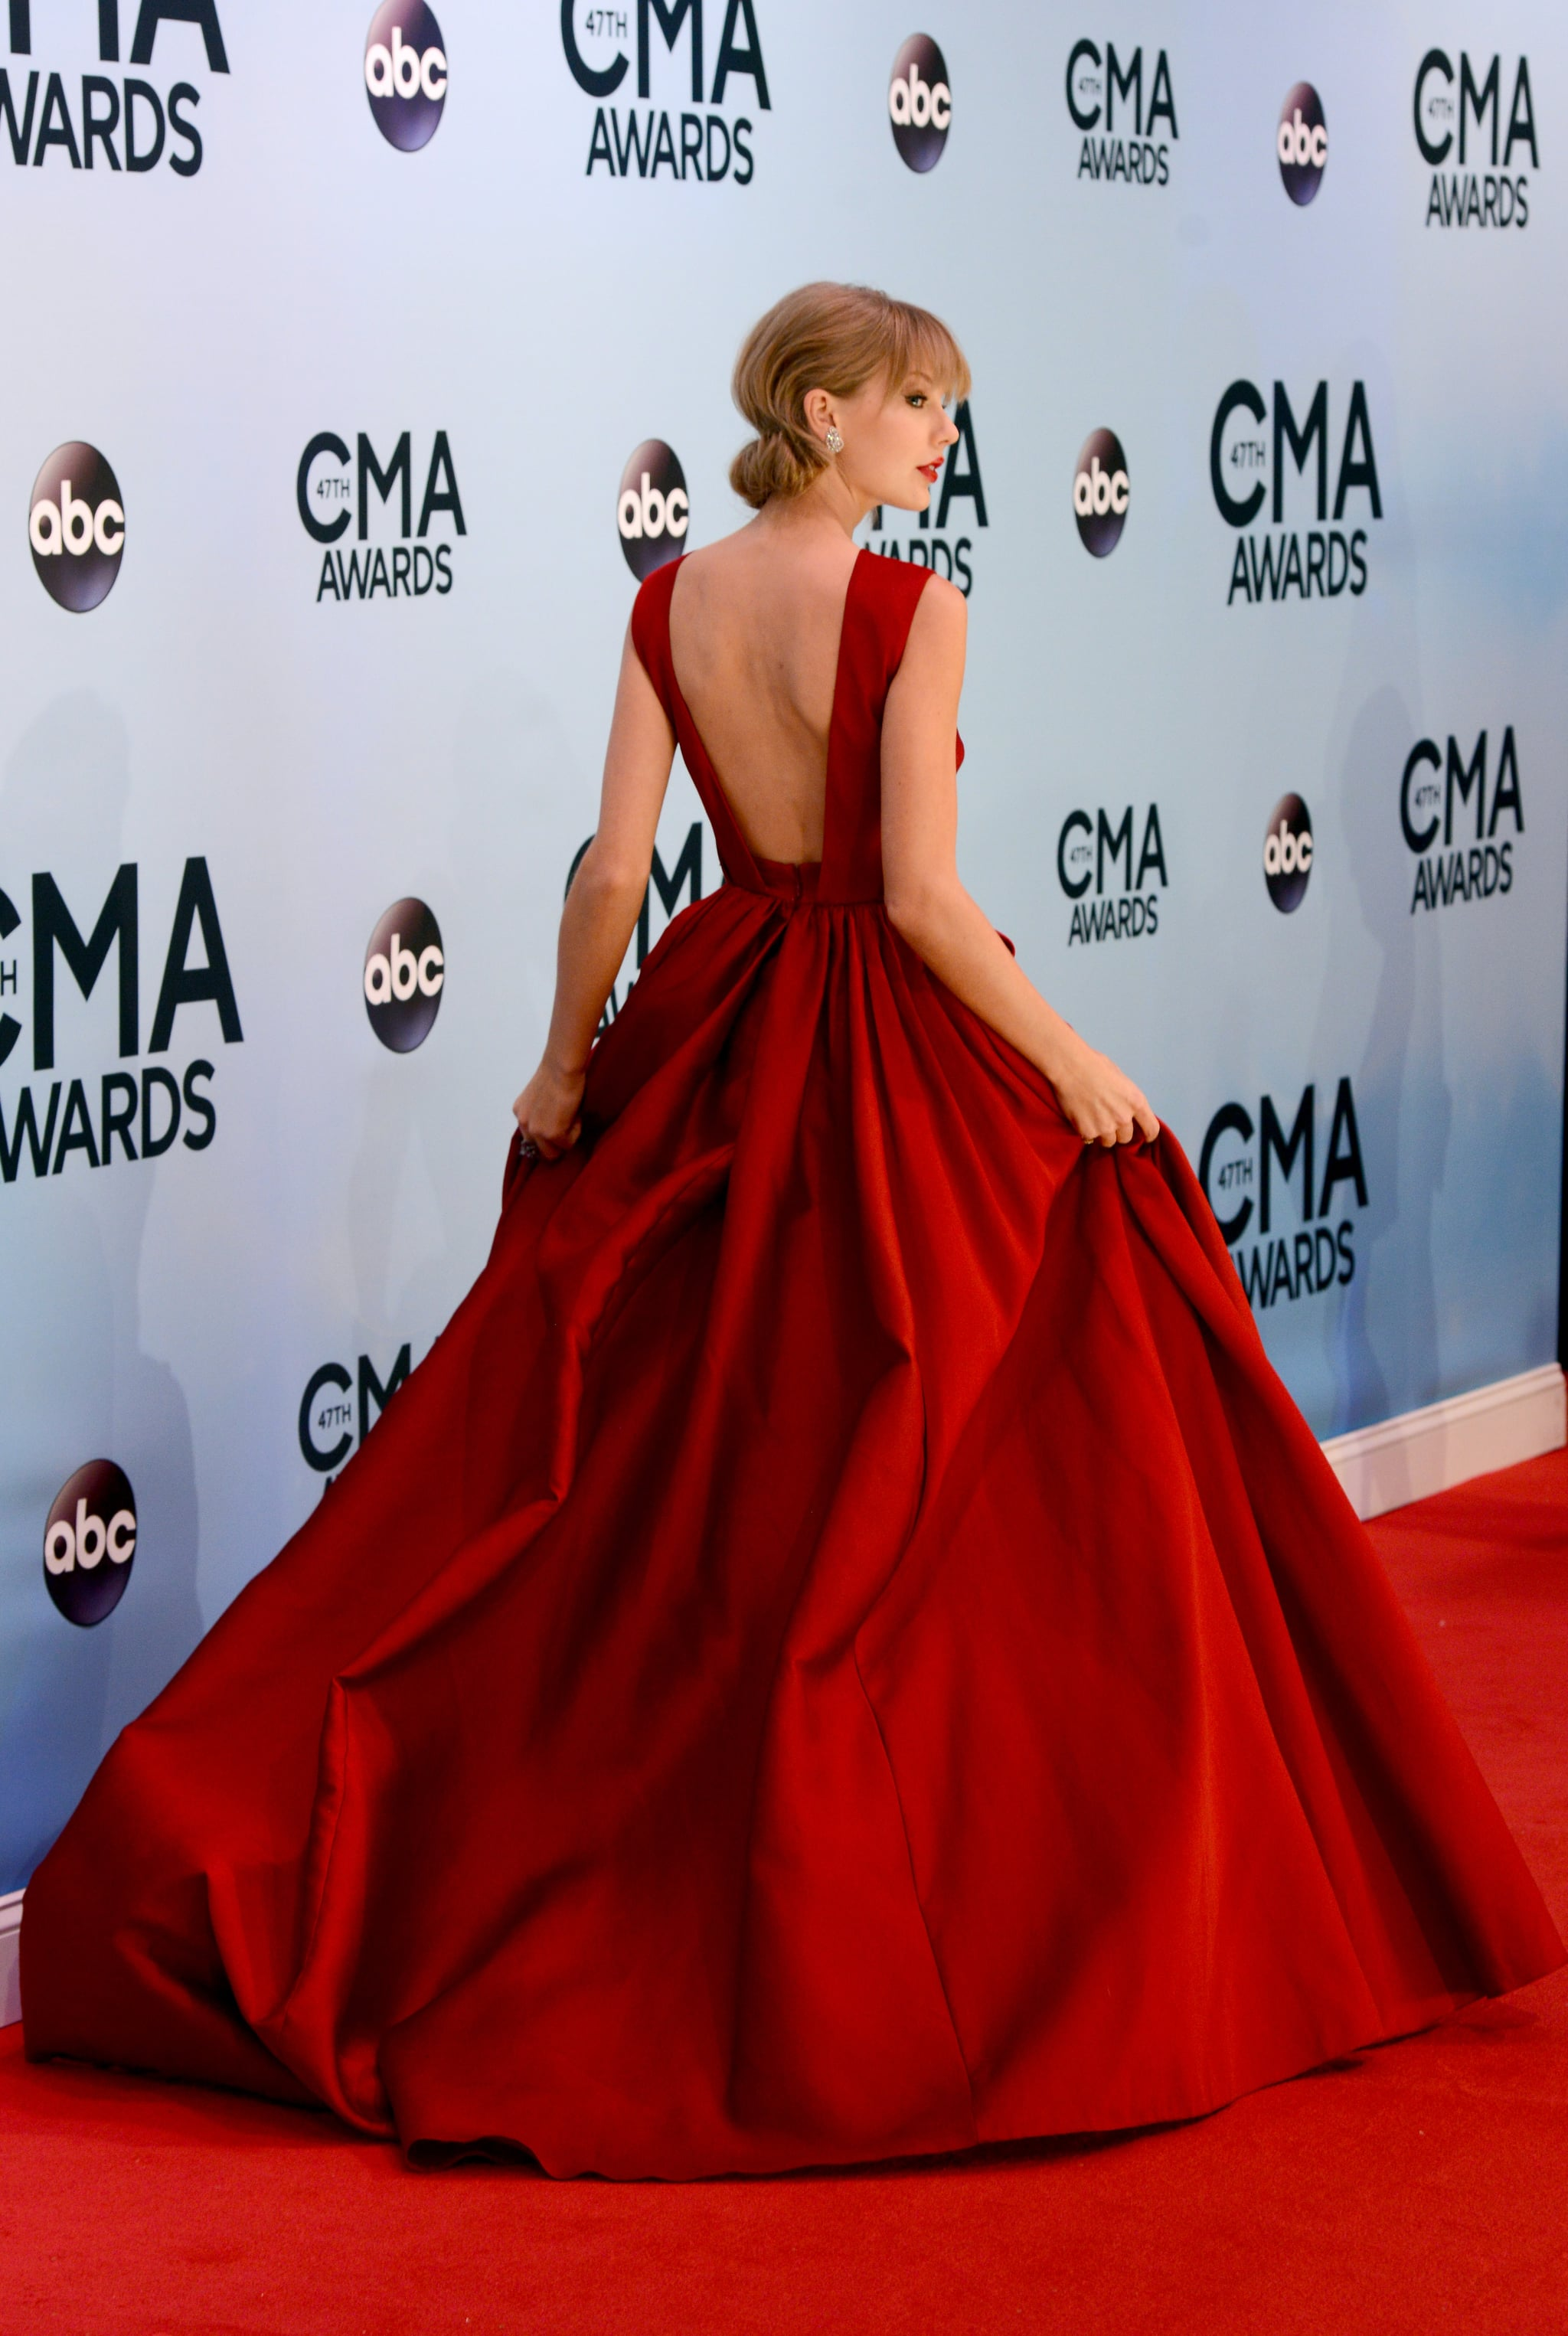 Taylor Swift showed off the back of her gown.